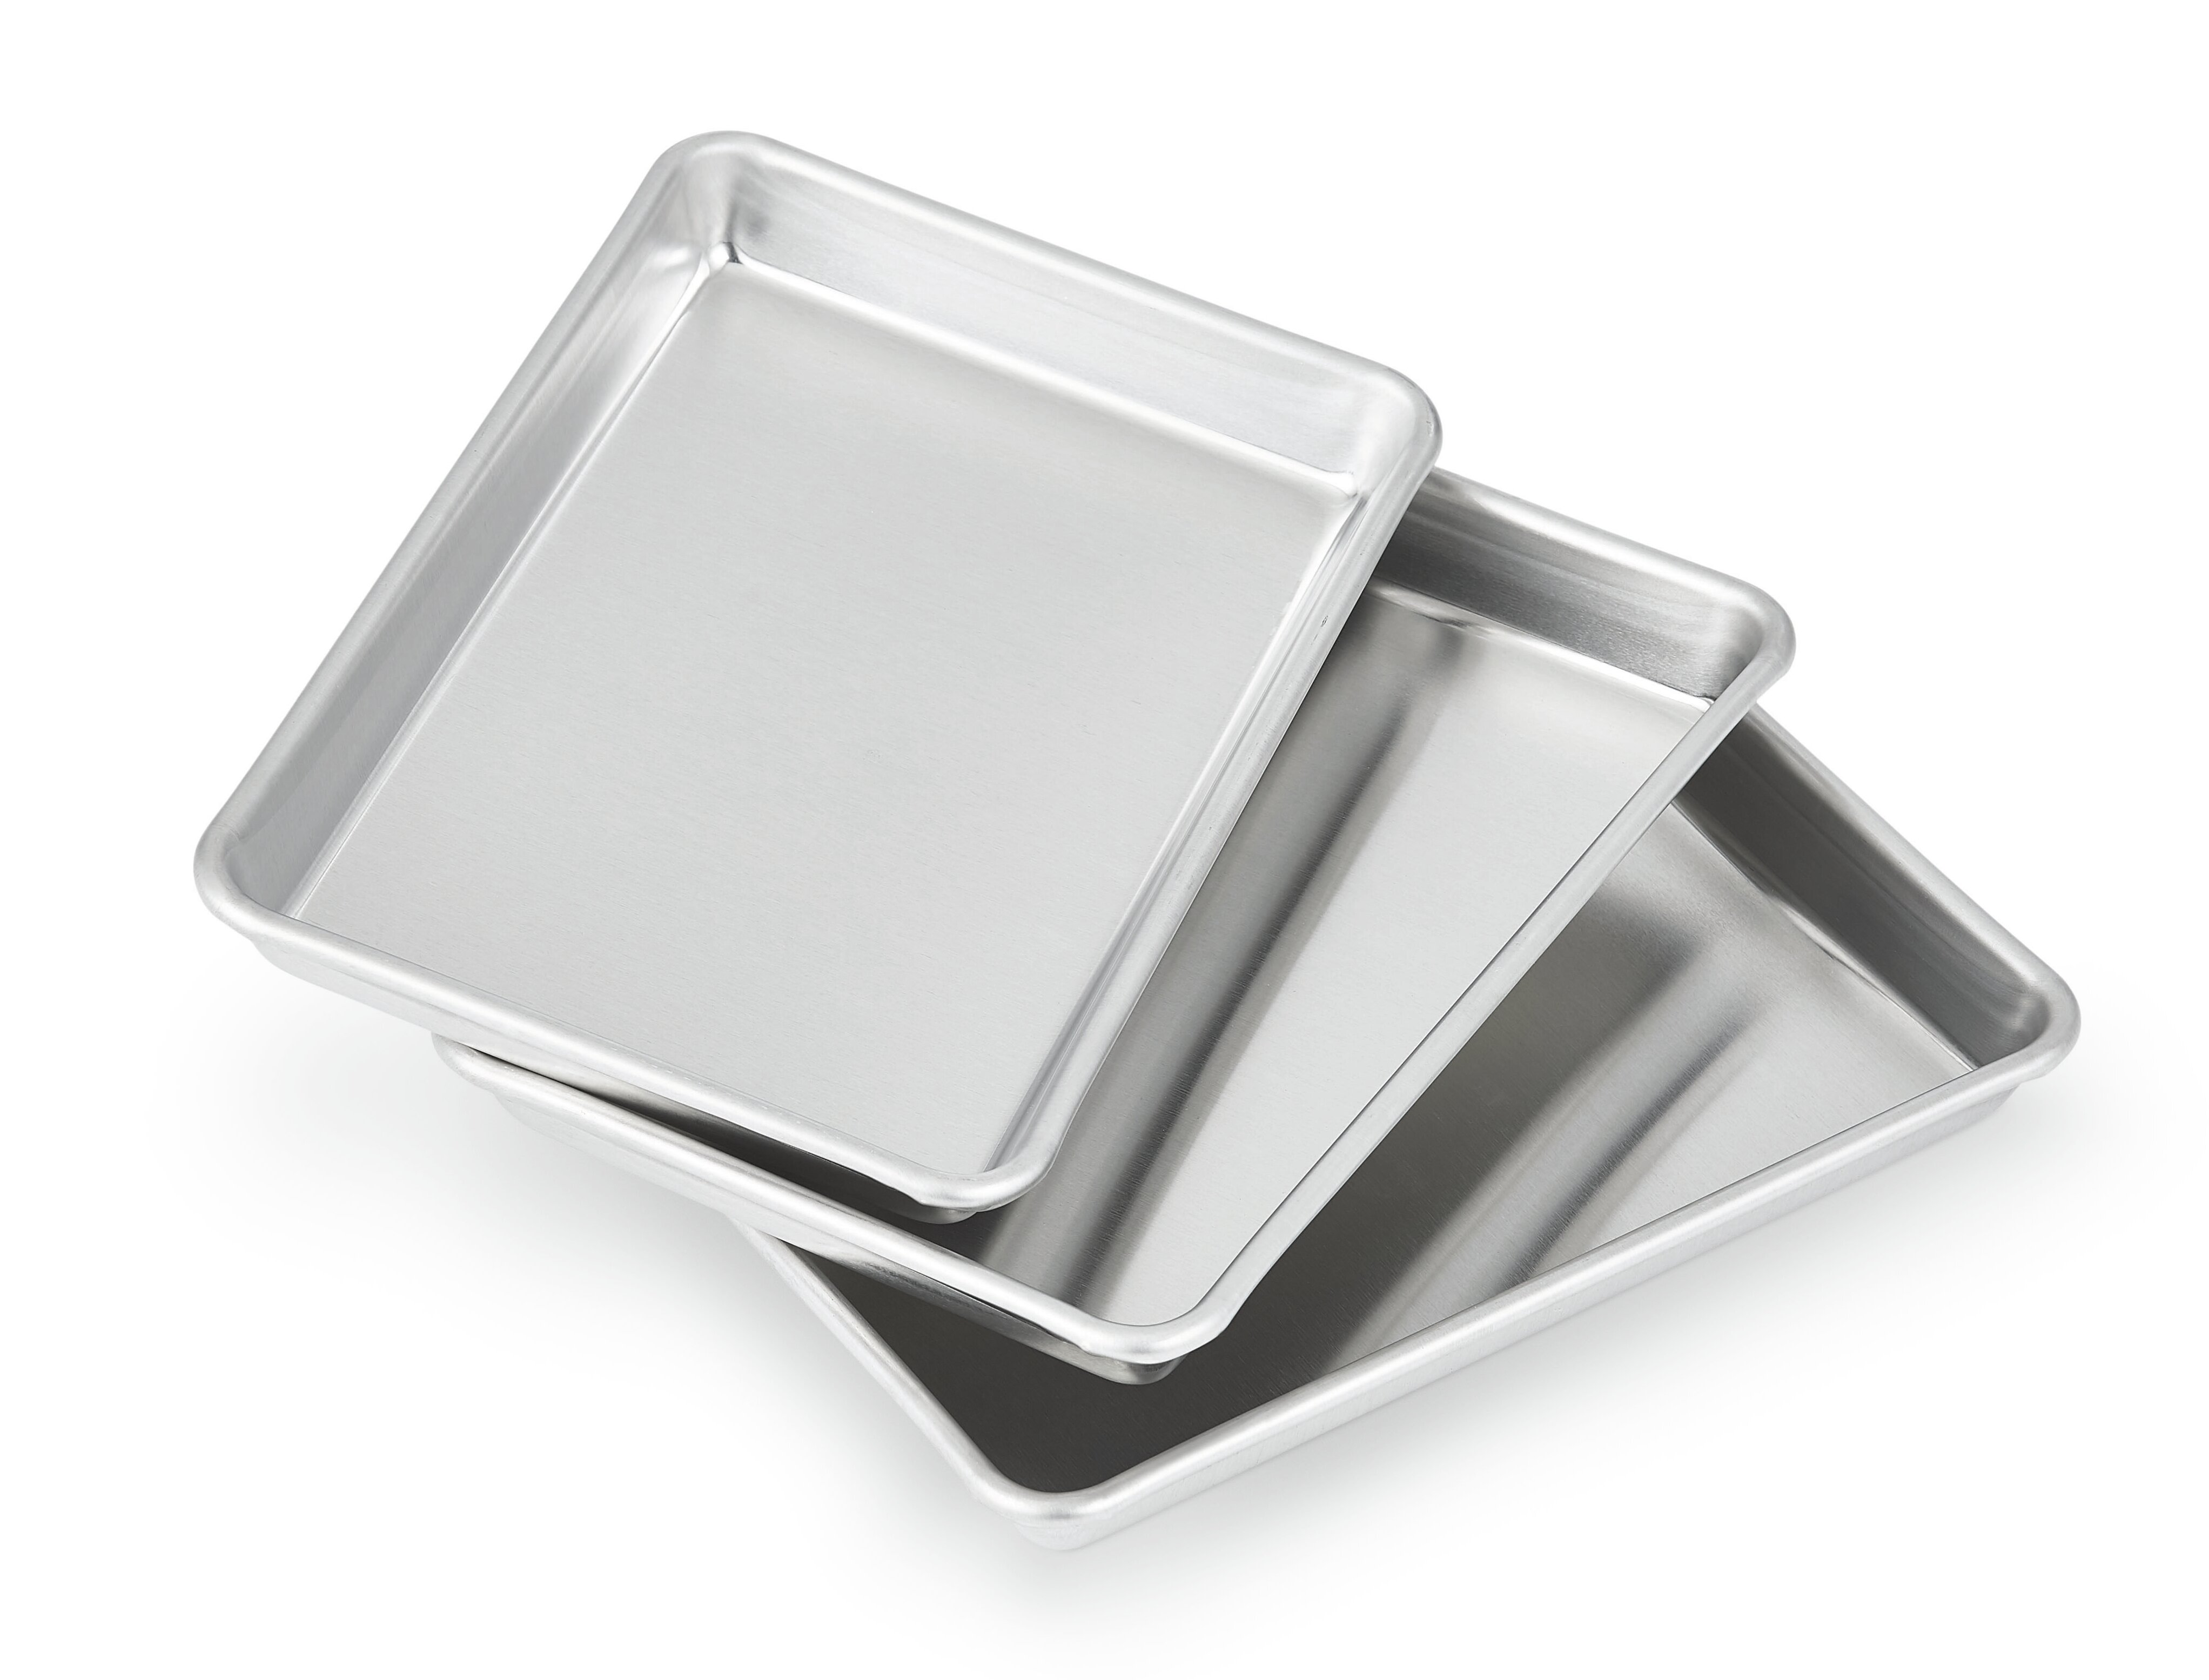 Stainless-Steel Baking Pan Large Cookie Sheet Set For Toaster Oven Tray Useful